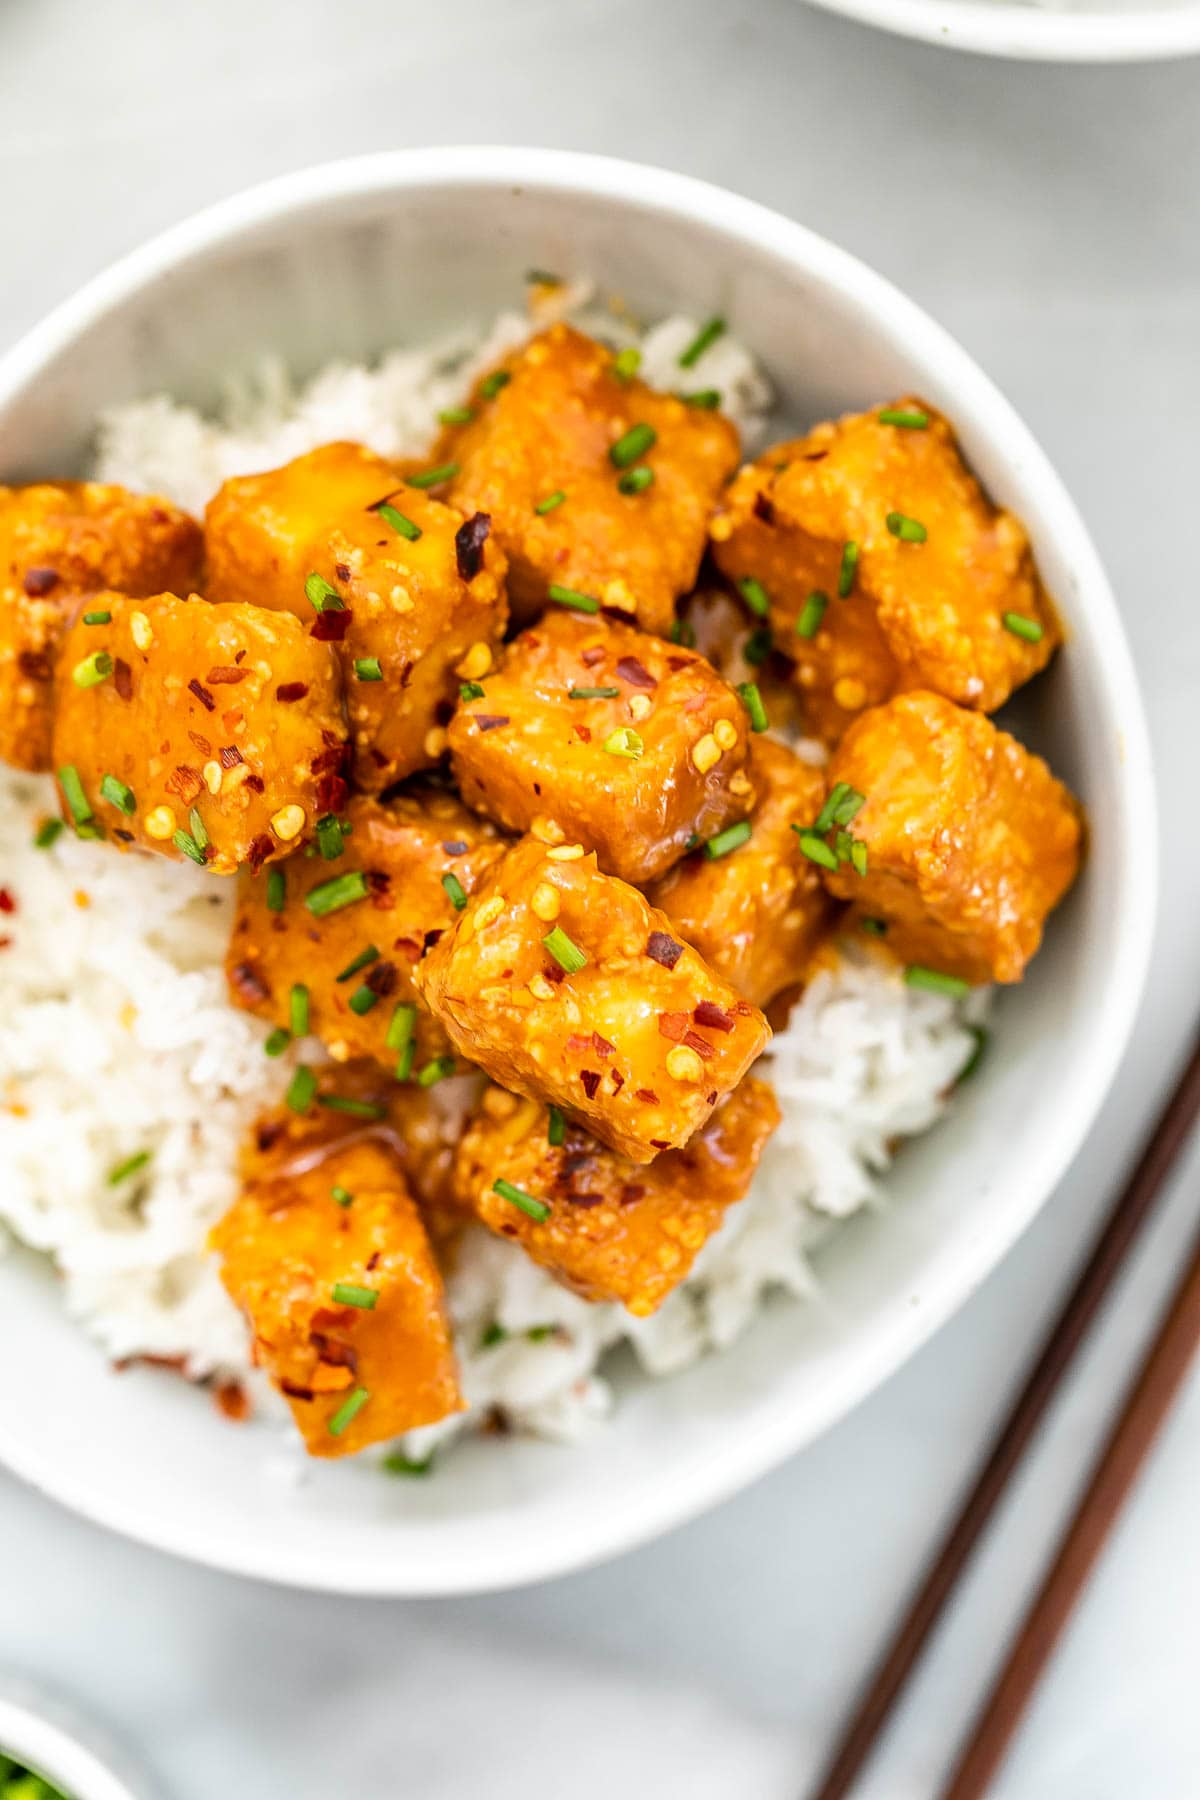 Up close image of the tofu show the texture.